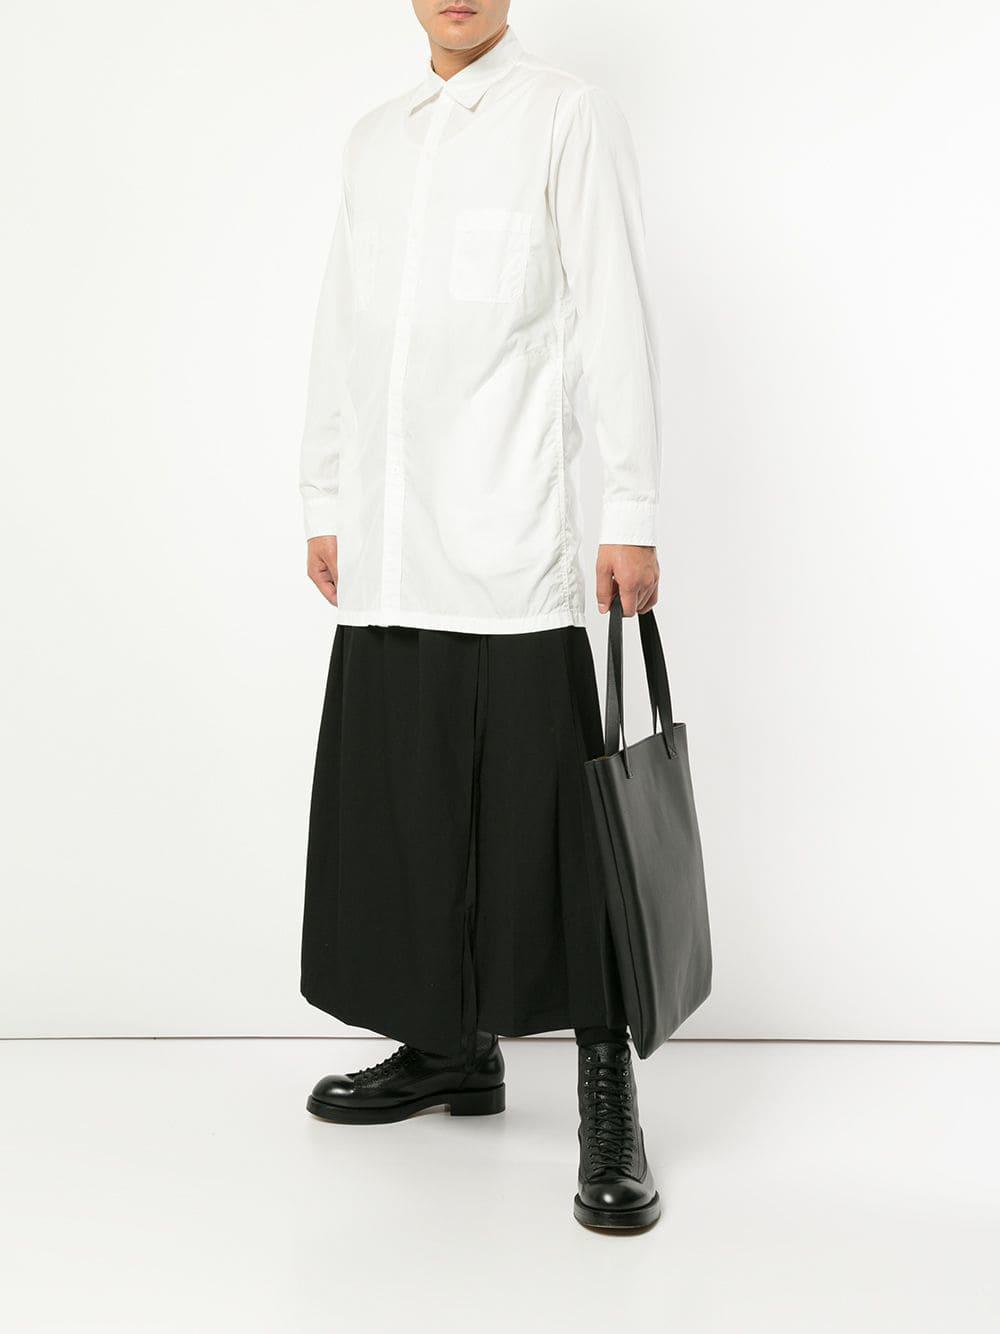 5fd5ed44a6 Yohji Yamamoto - White Deconstructed Shirt for Men - Lyst. View fullscreen